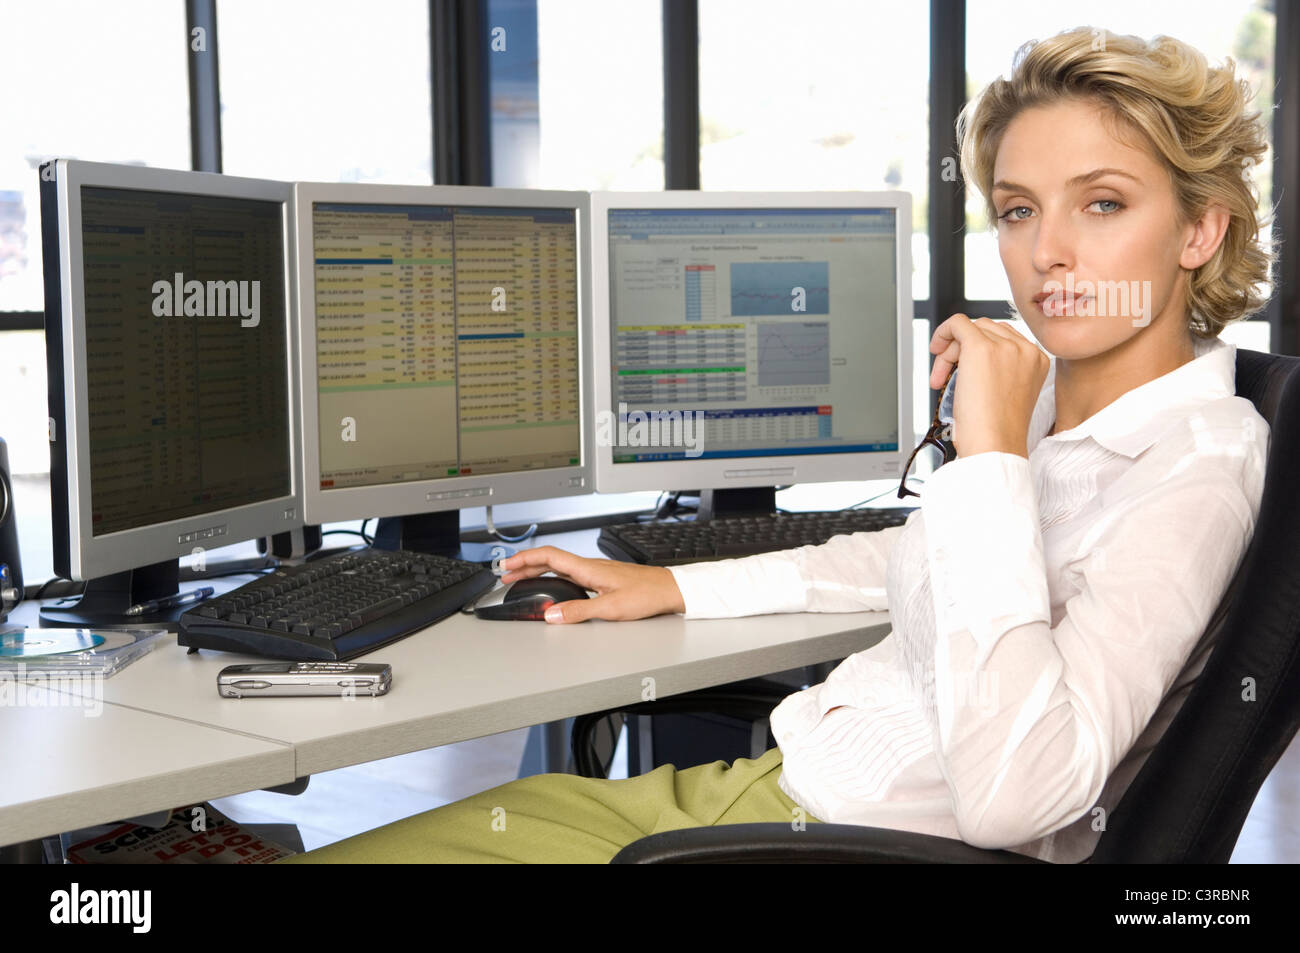 Buisness woman at the computer - Stock Image